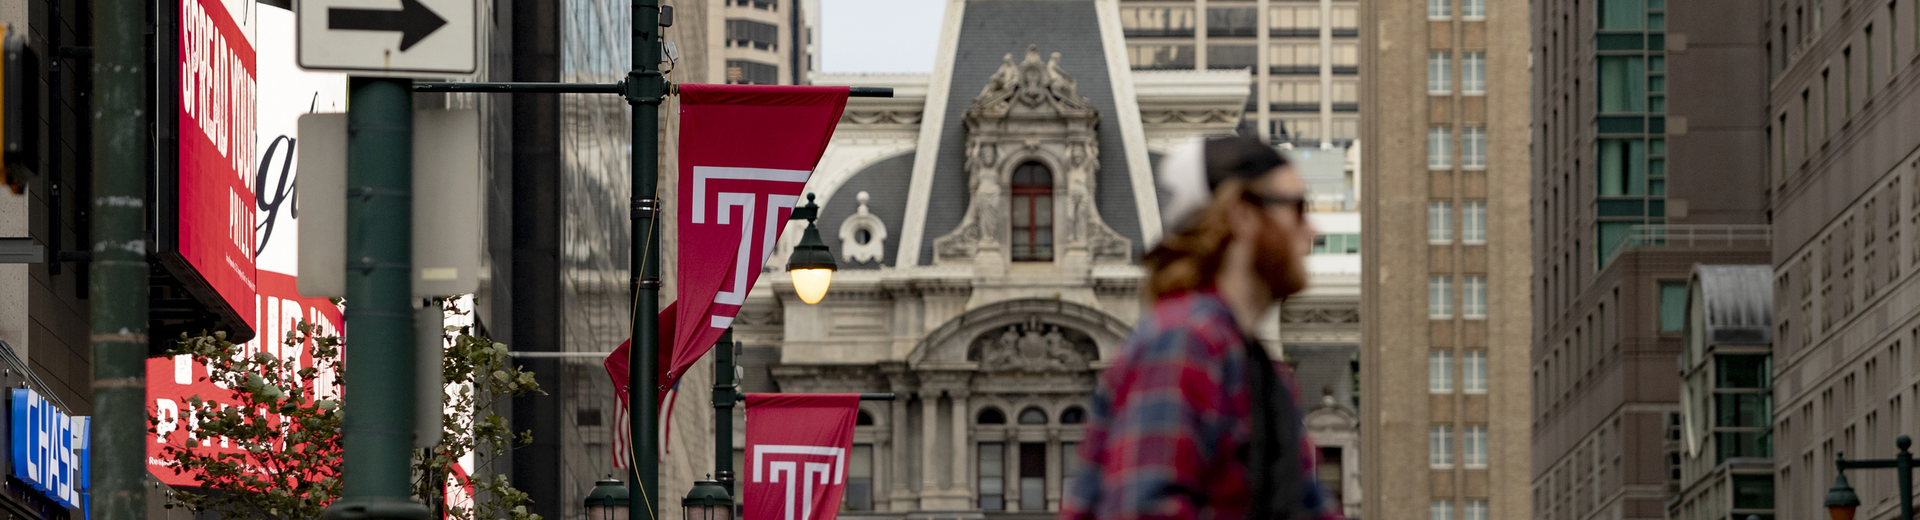 photo of city hall with temple flags and student in foreground